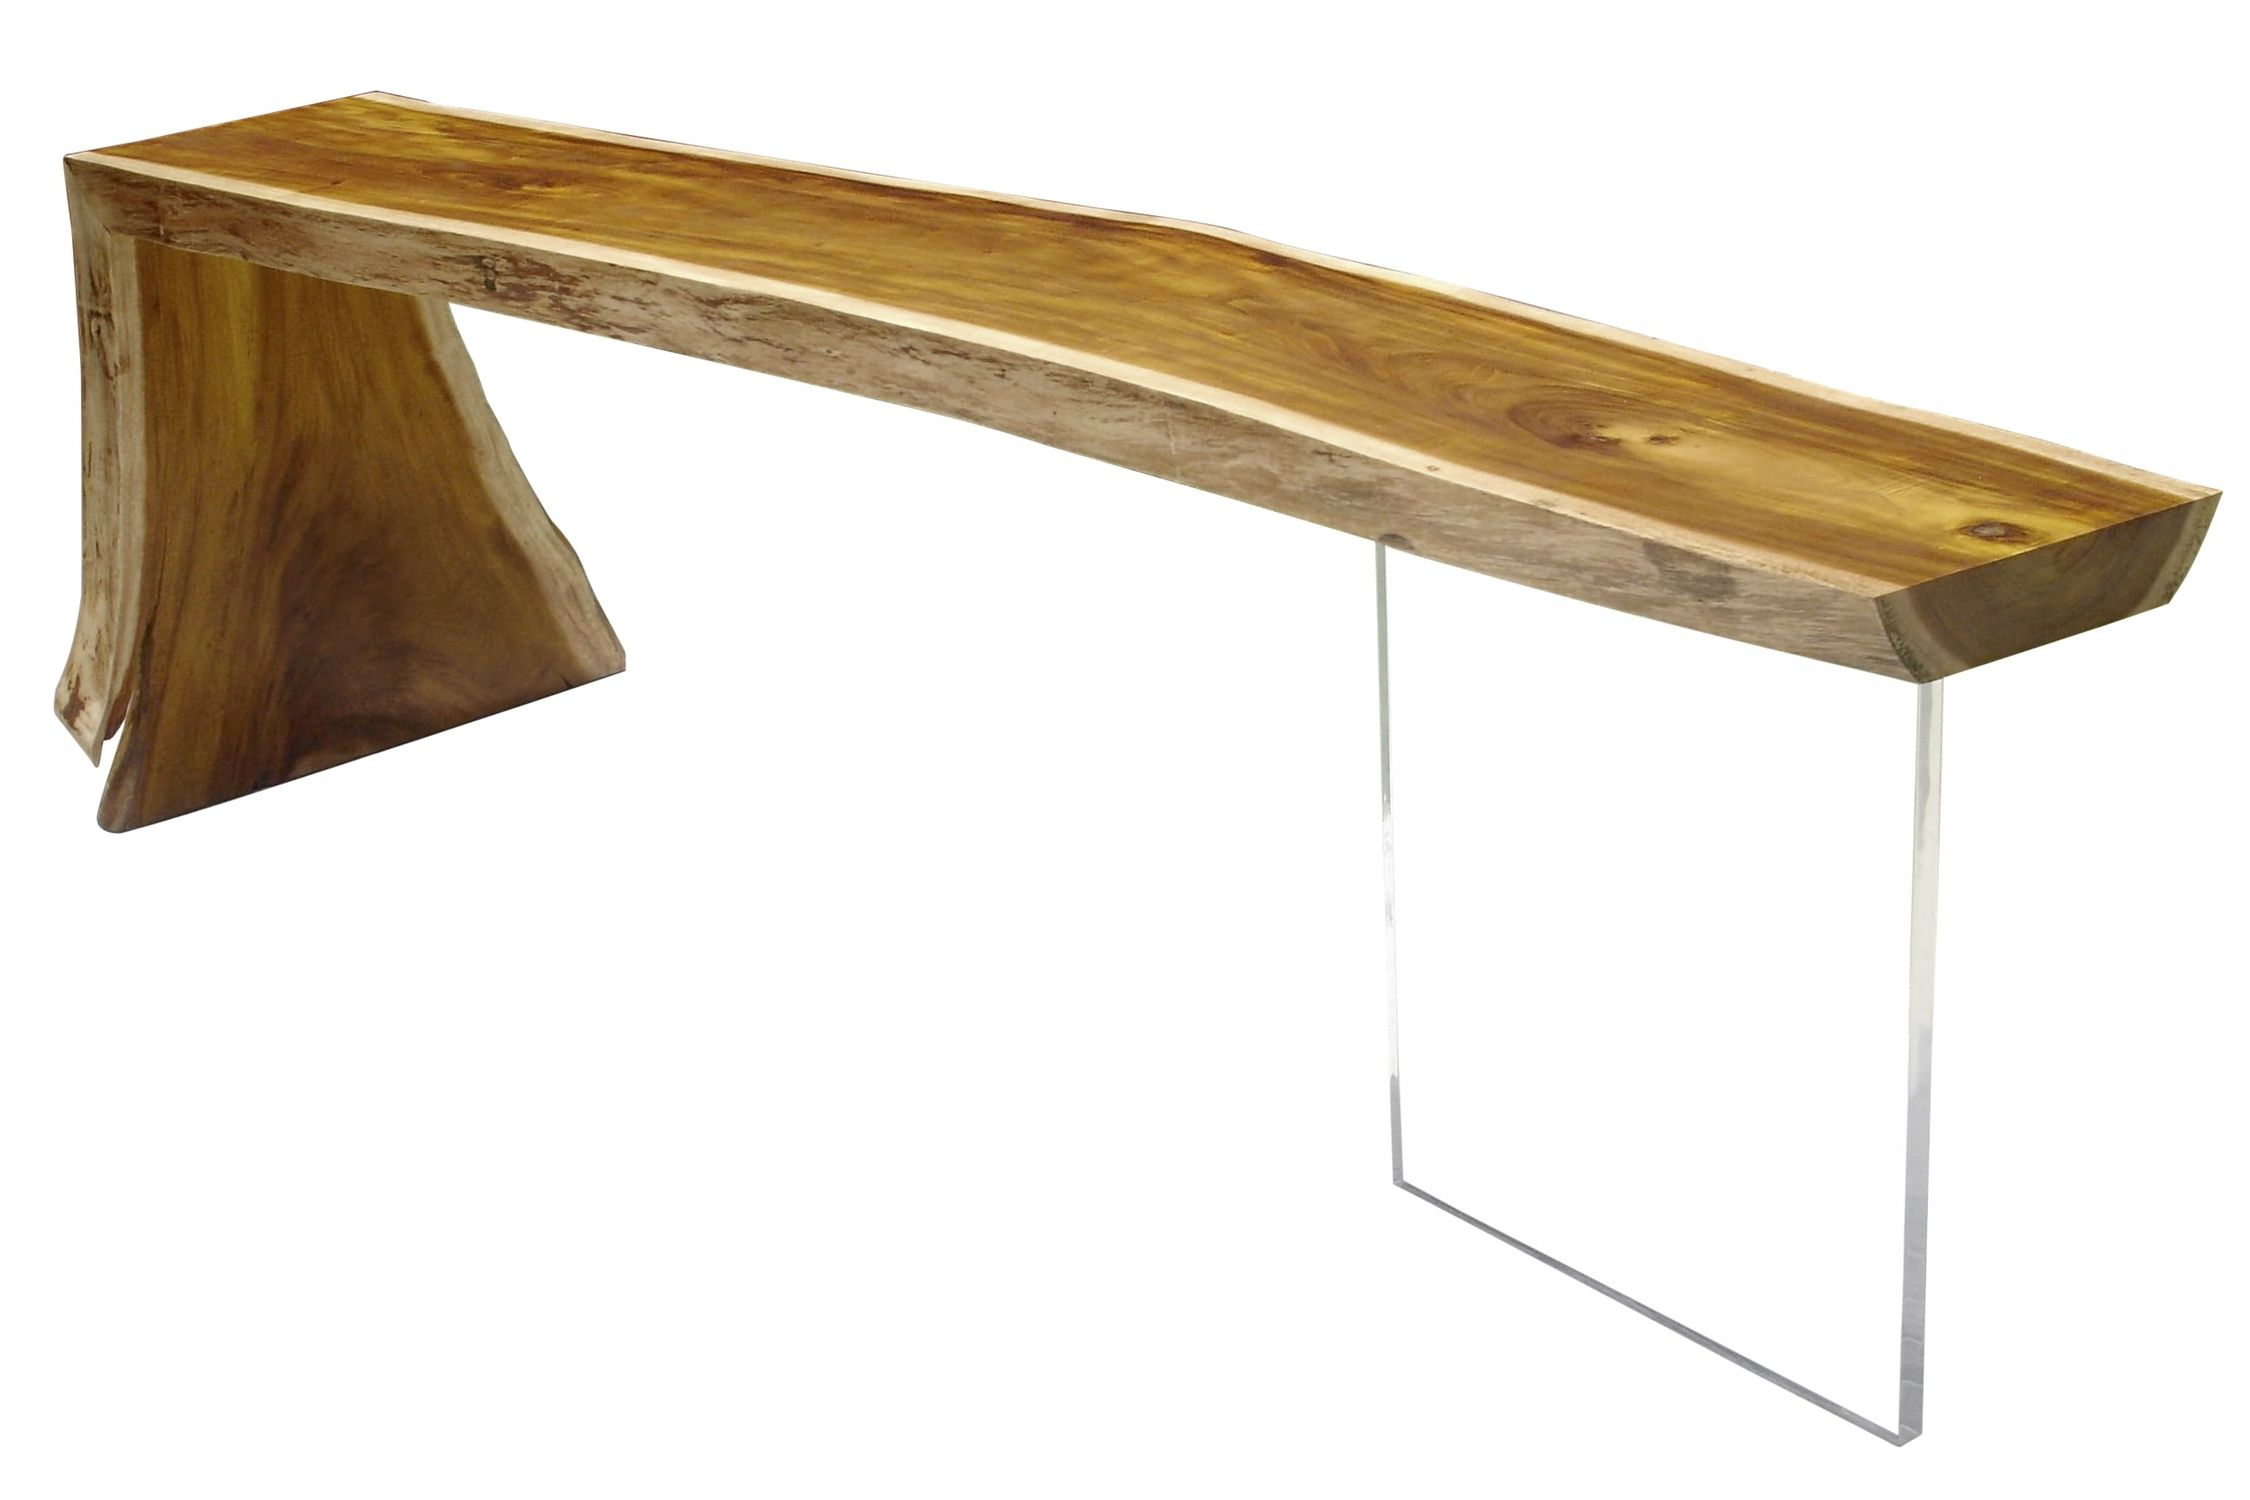 sideboard table wooden rectangular in reclaimed material raw edge lucite